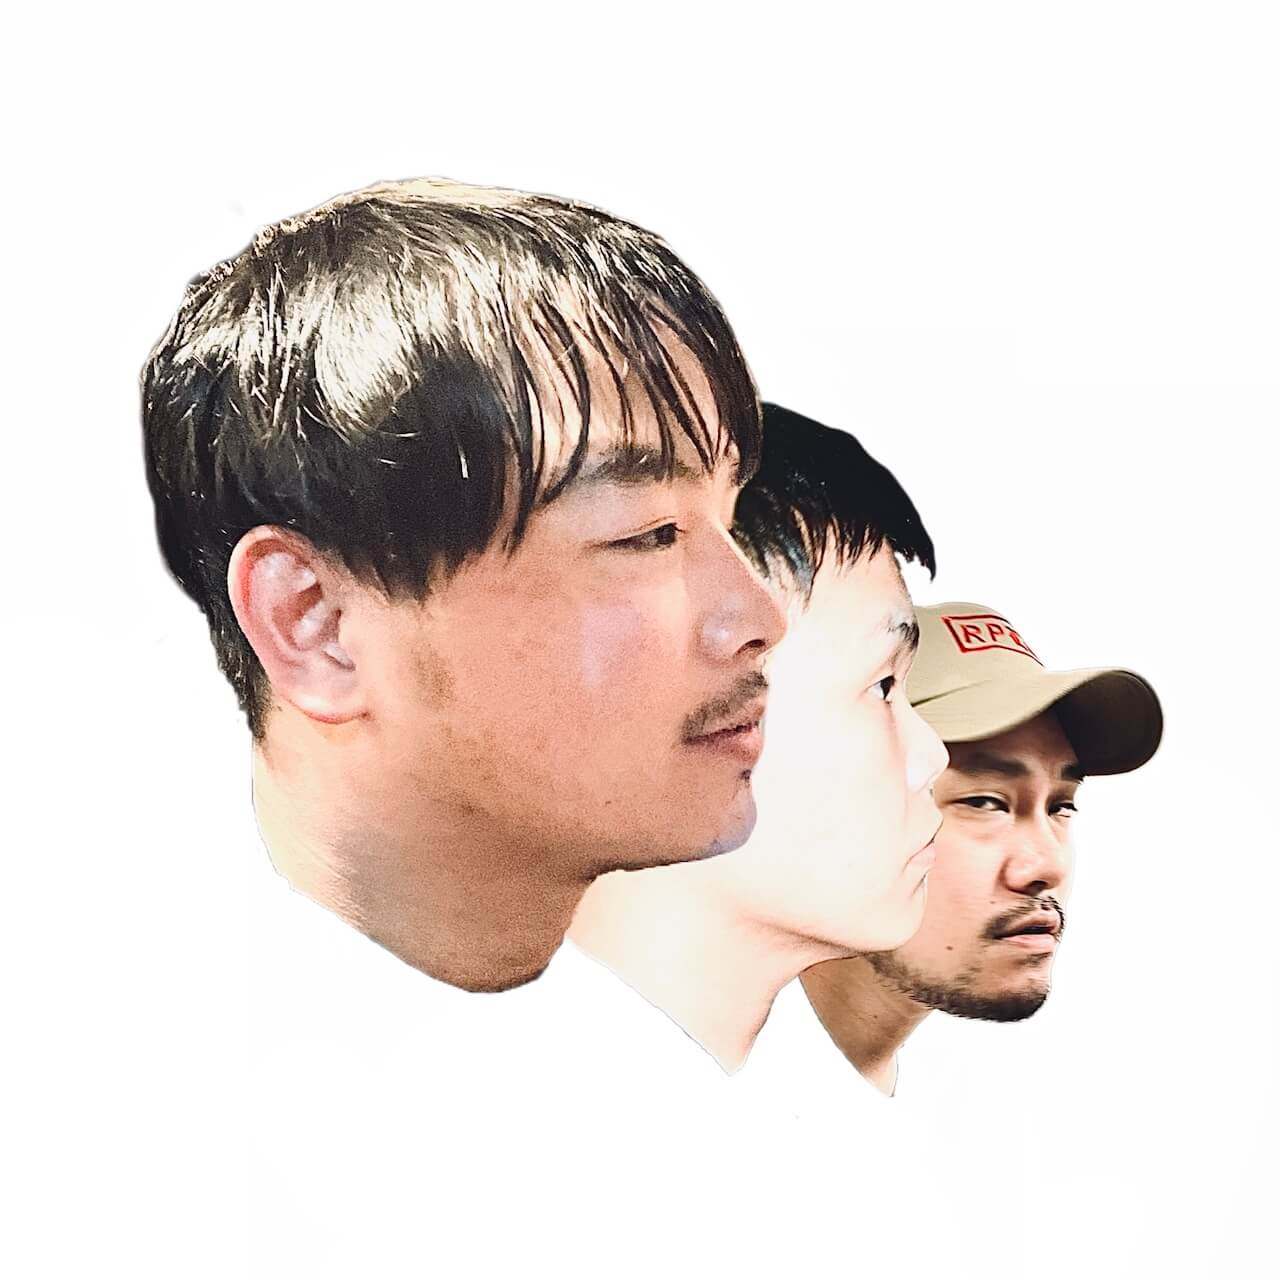 VOLOJZA、88Lexuz、PoivreによるDie, No Ties, Flyによる新作EP『THE FLY』がリリース|YNG JOE$、没 a.k.a NGSが客演参加 music210917-die-noties-fly-1